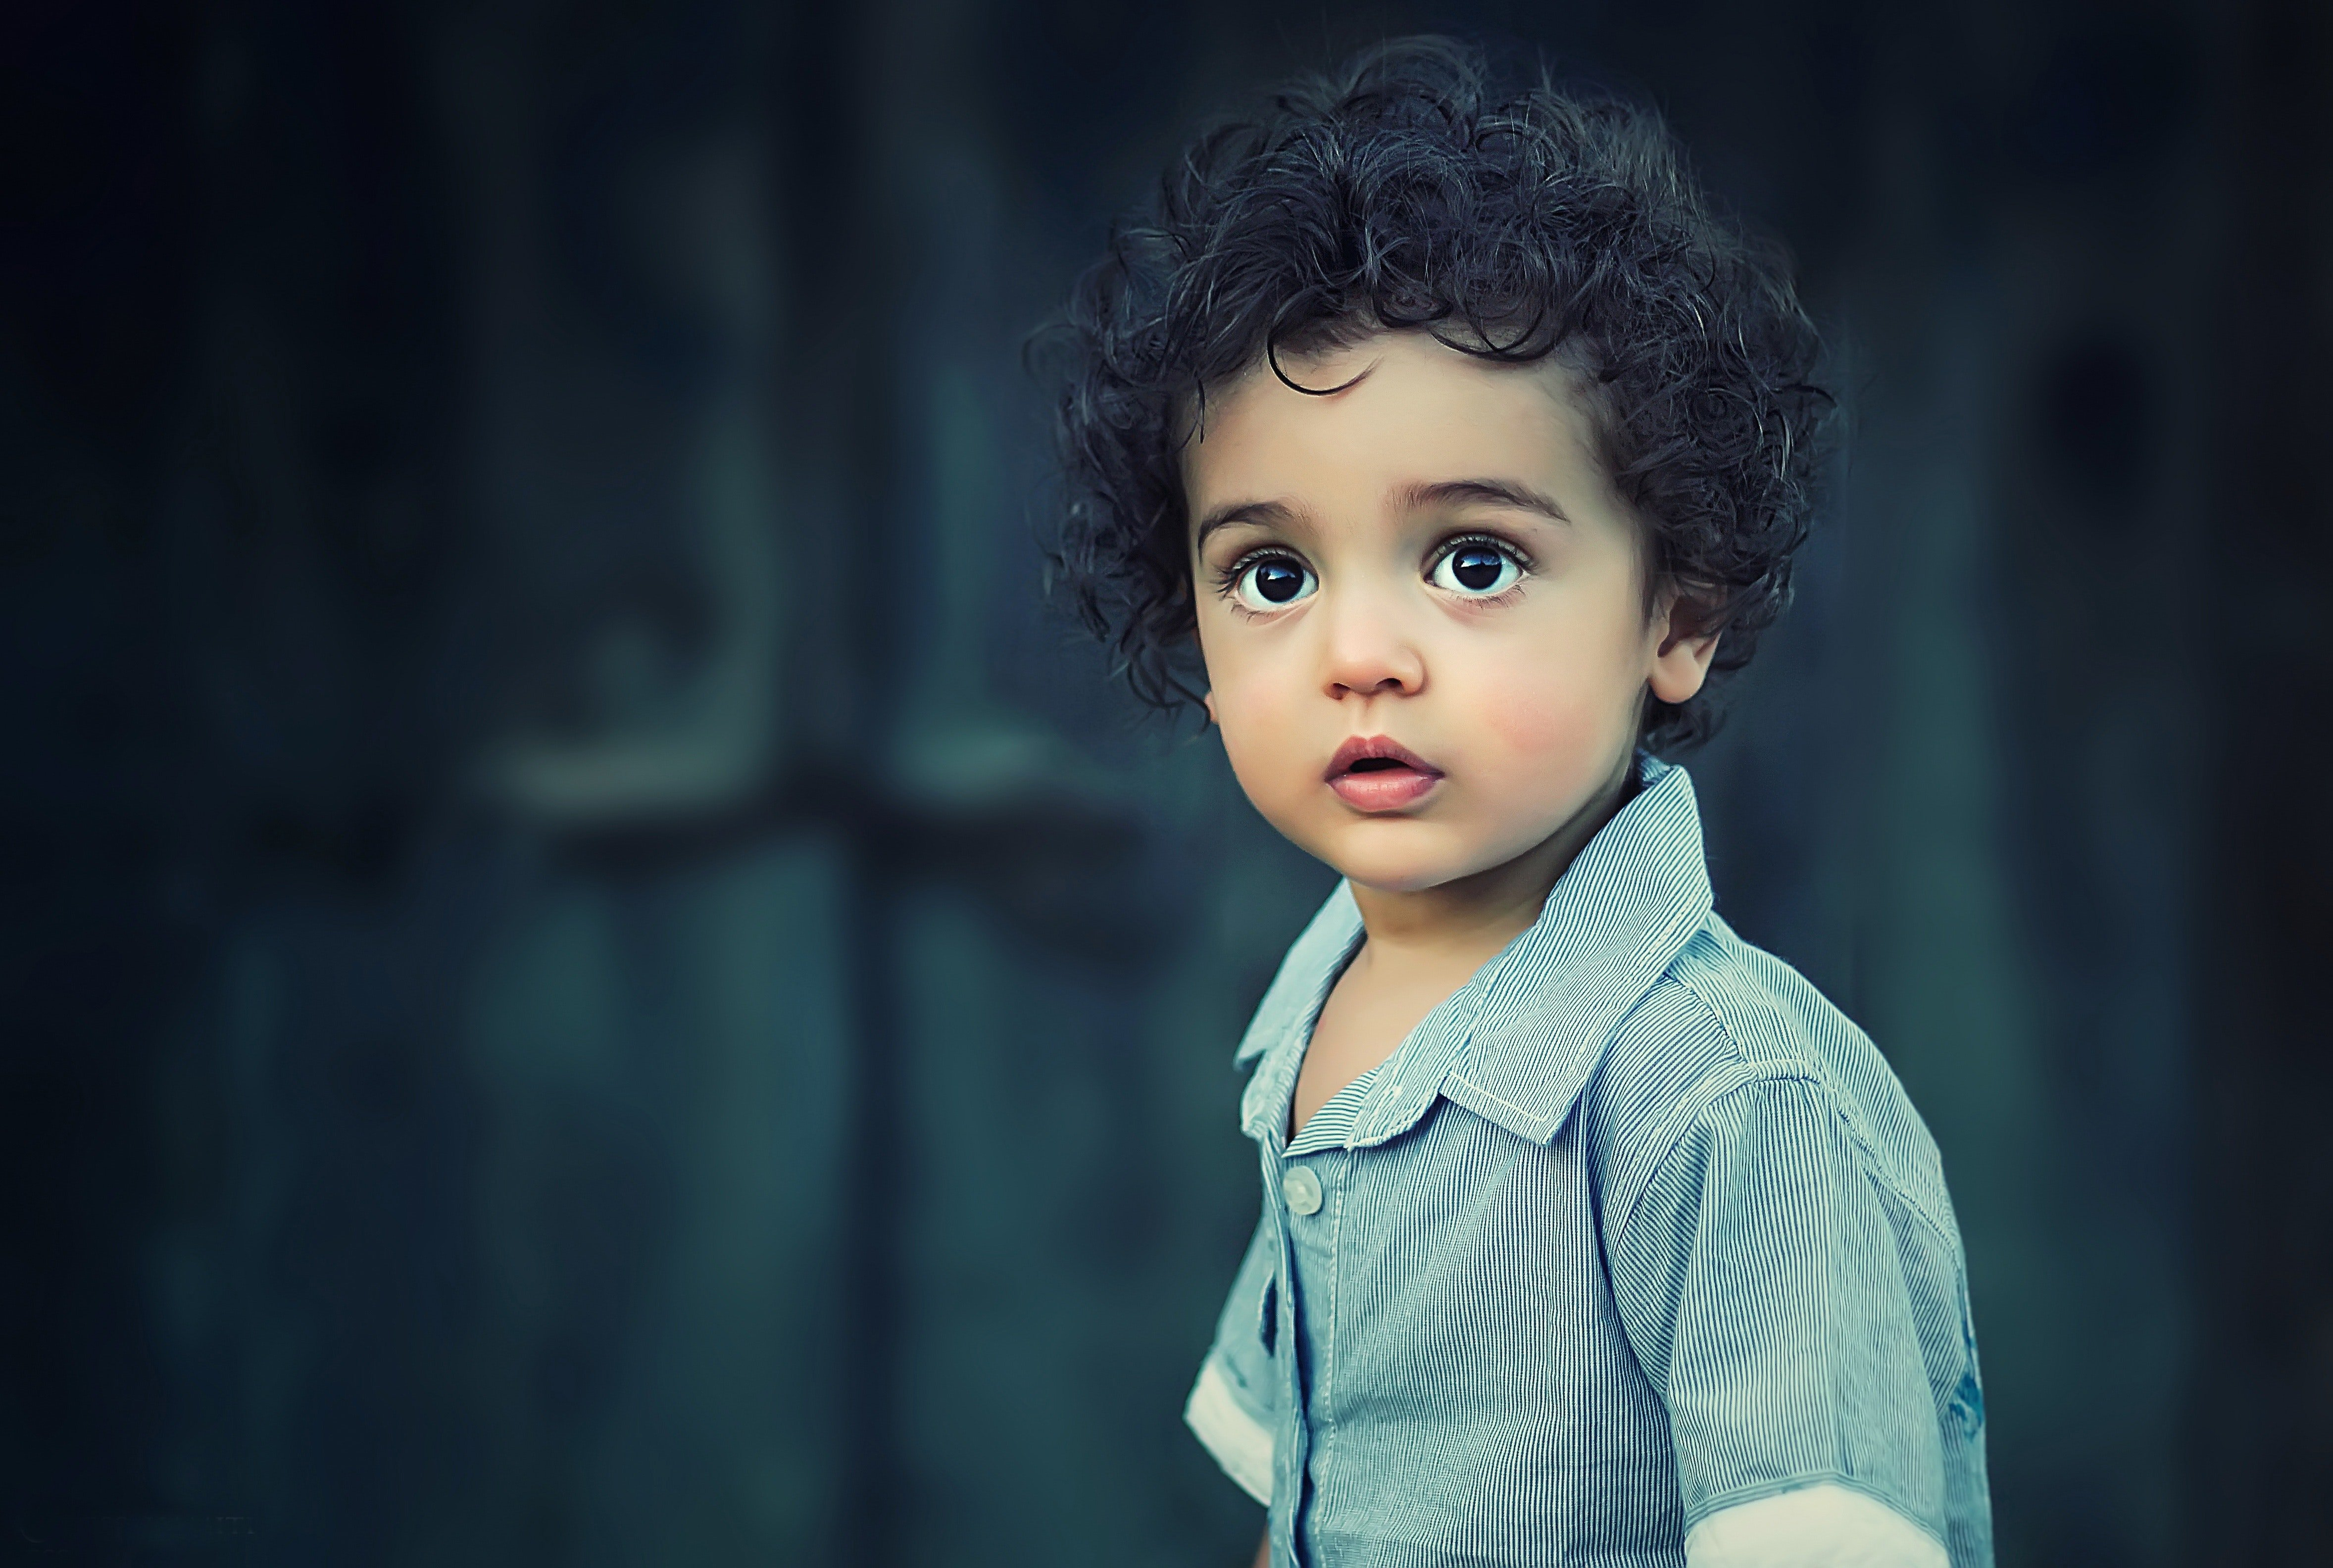 A boy with beautiful eyes.   Source: Pexels